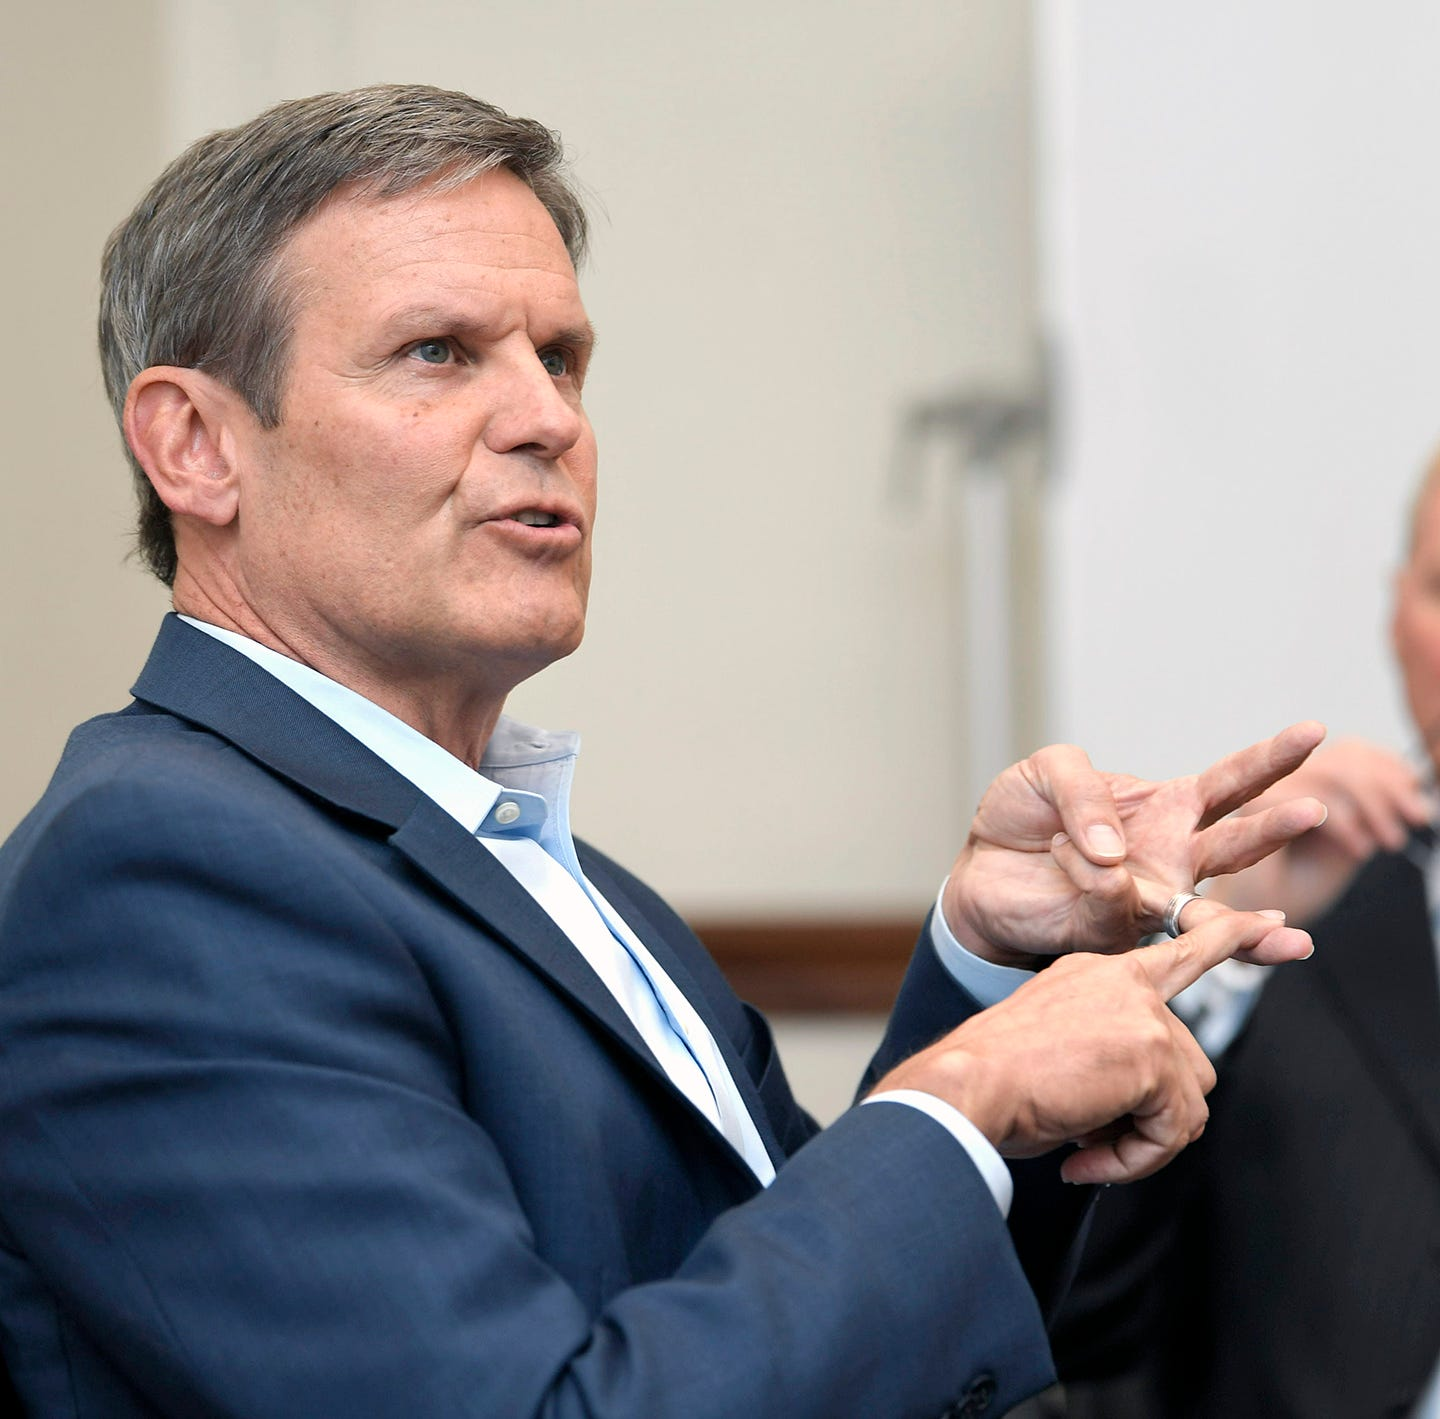 'I want input from folks all across the state': Inside Bill Lee's transition to office